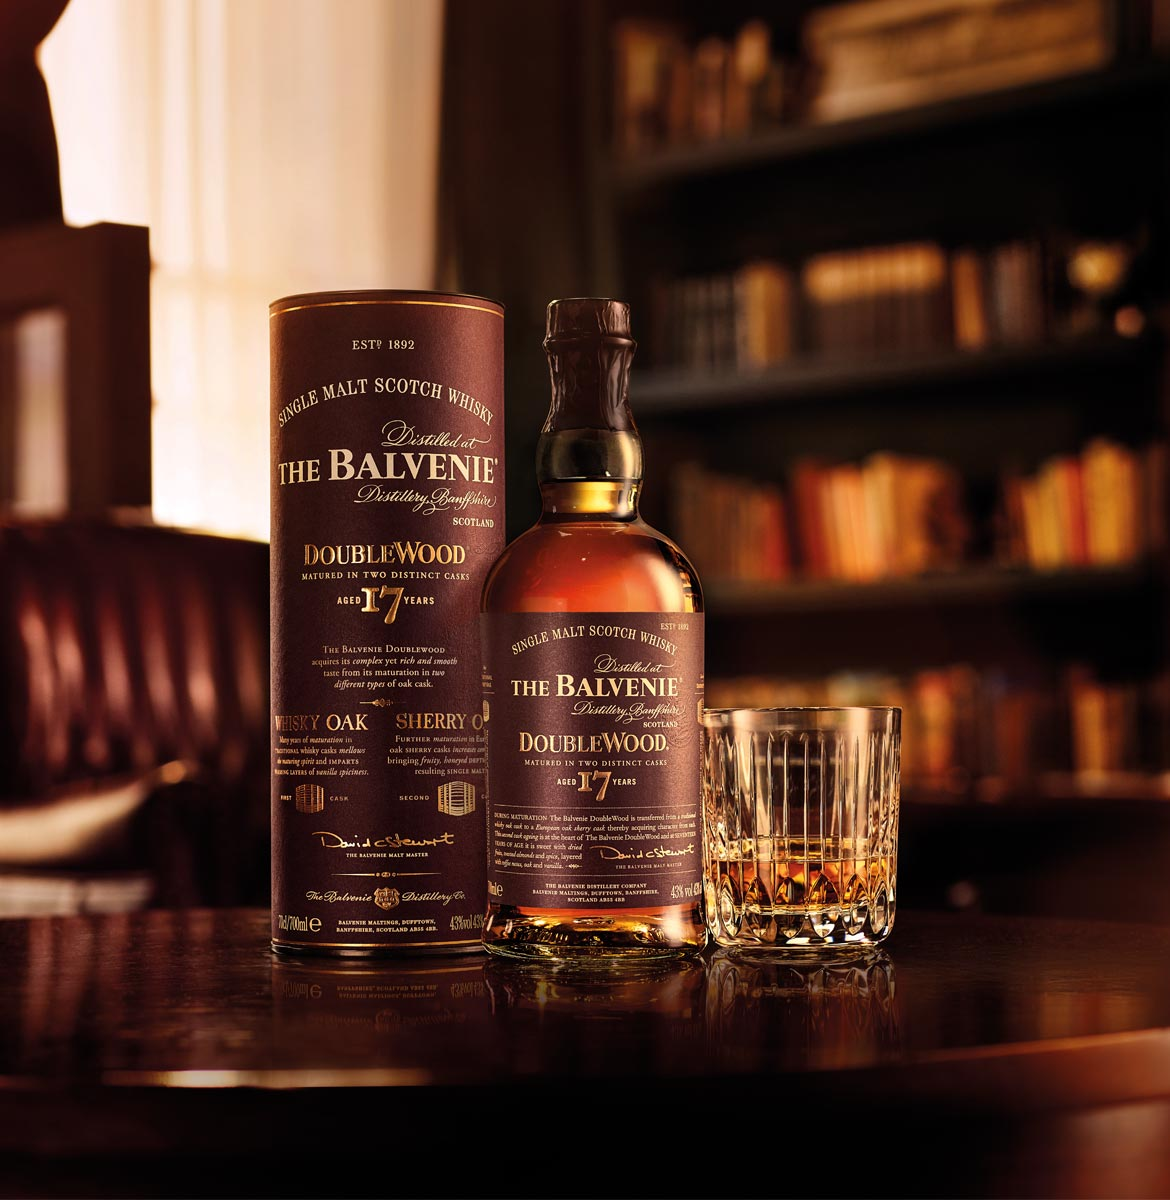 The Balvenie Doublewood 17 Year Old To Be Discontinued photo